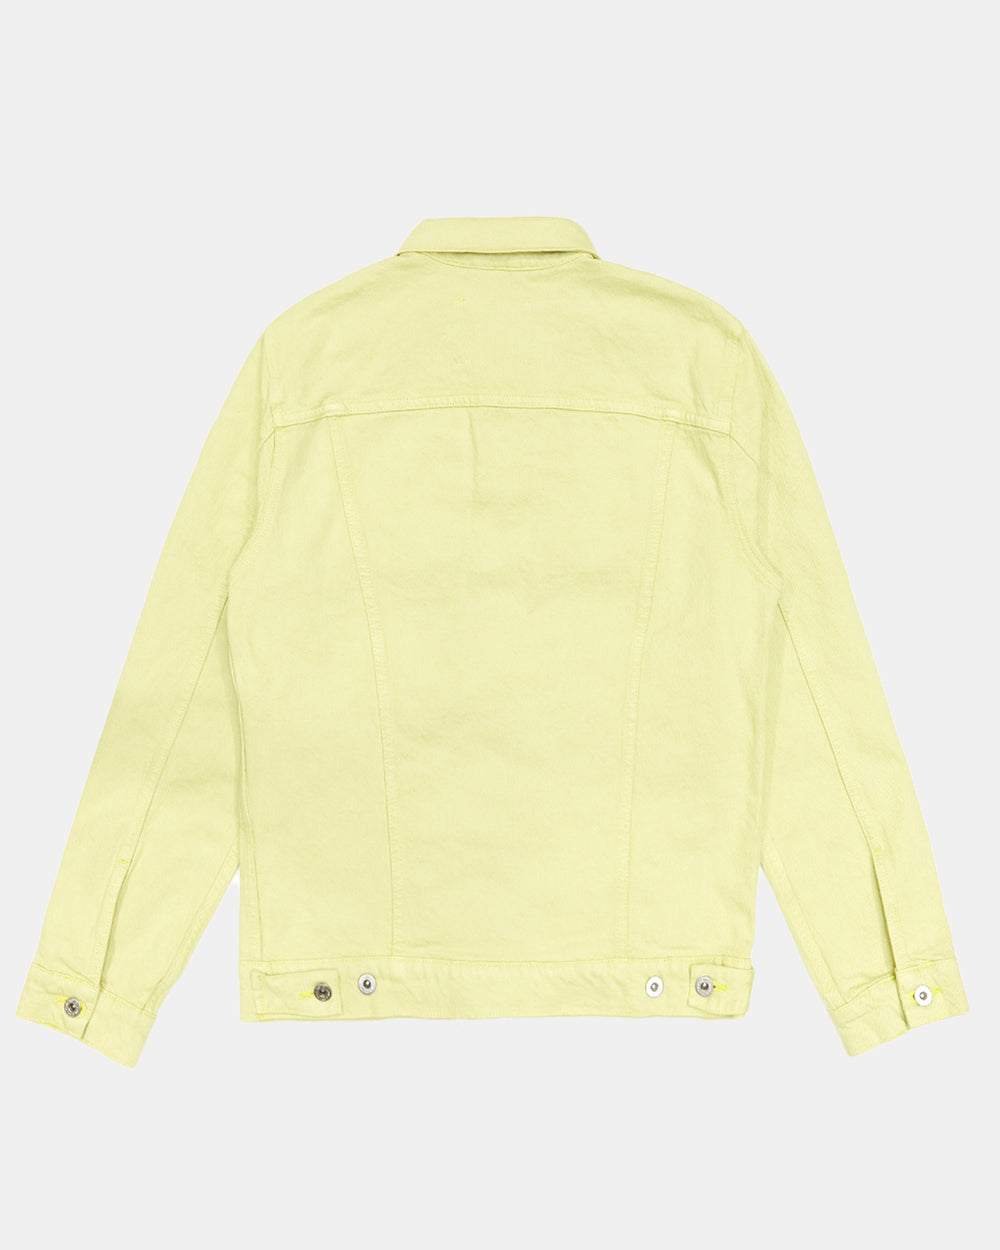 Levi's - Made & Crafted Type 3 Trucker Jacket (Charlock Yellow)